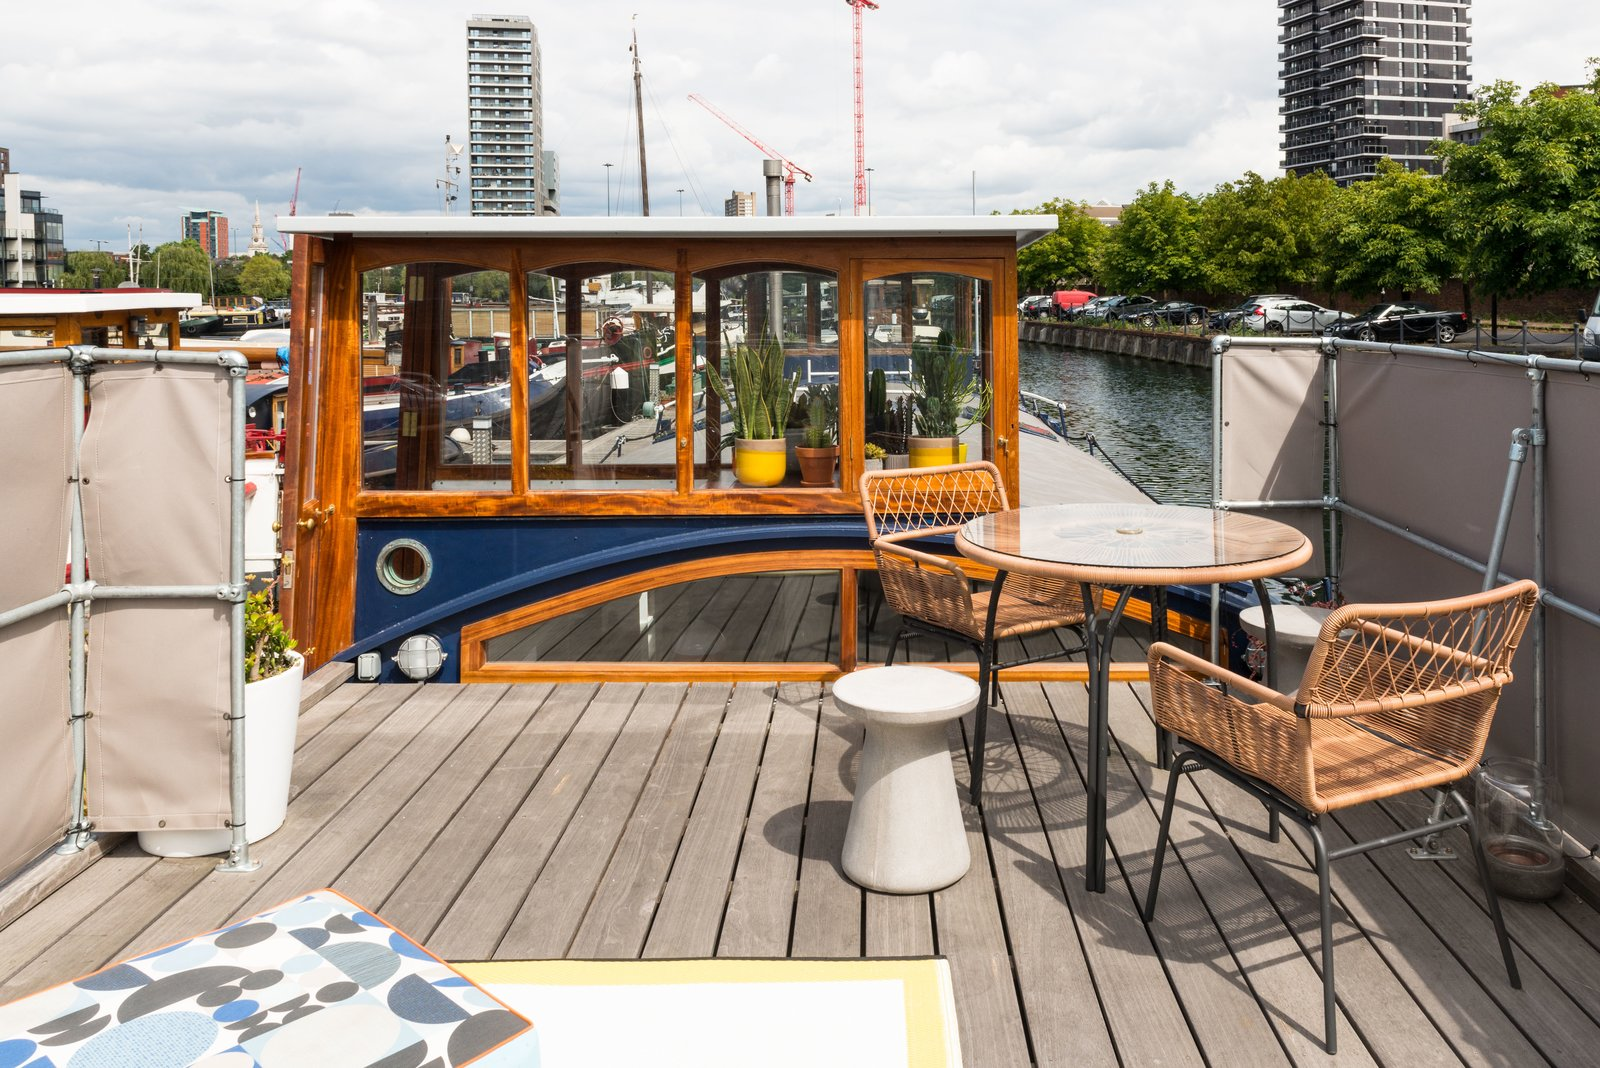 Outdoor, Rooftop, and Wood Patio, Porch, Deck A round concrete stool, table and chairs, custom cushions, and outdoor rug create a perfect terrace setting to look out to the city beyond.  Photo 9 of 9 in Londoners Can Live in This Scandinavian-Inspired, Converted Barge For $424K